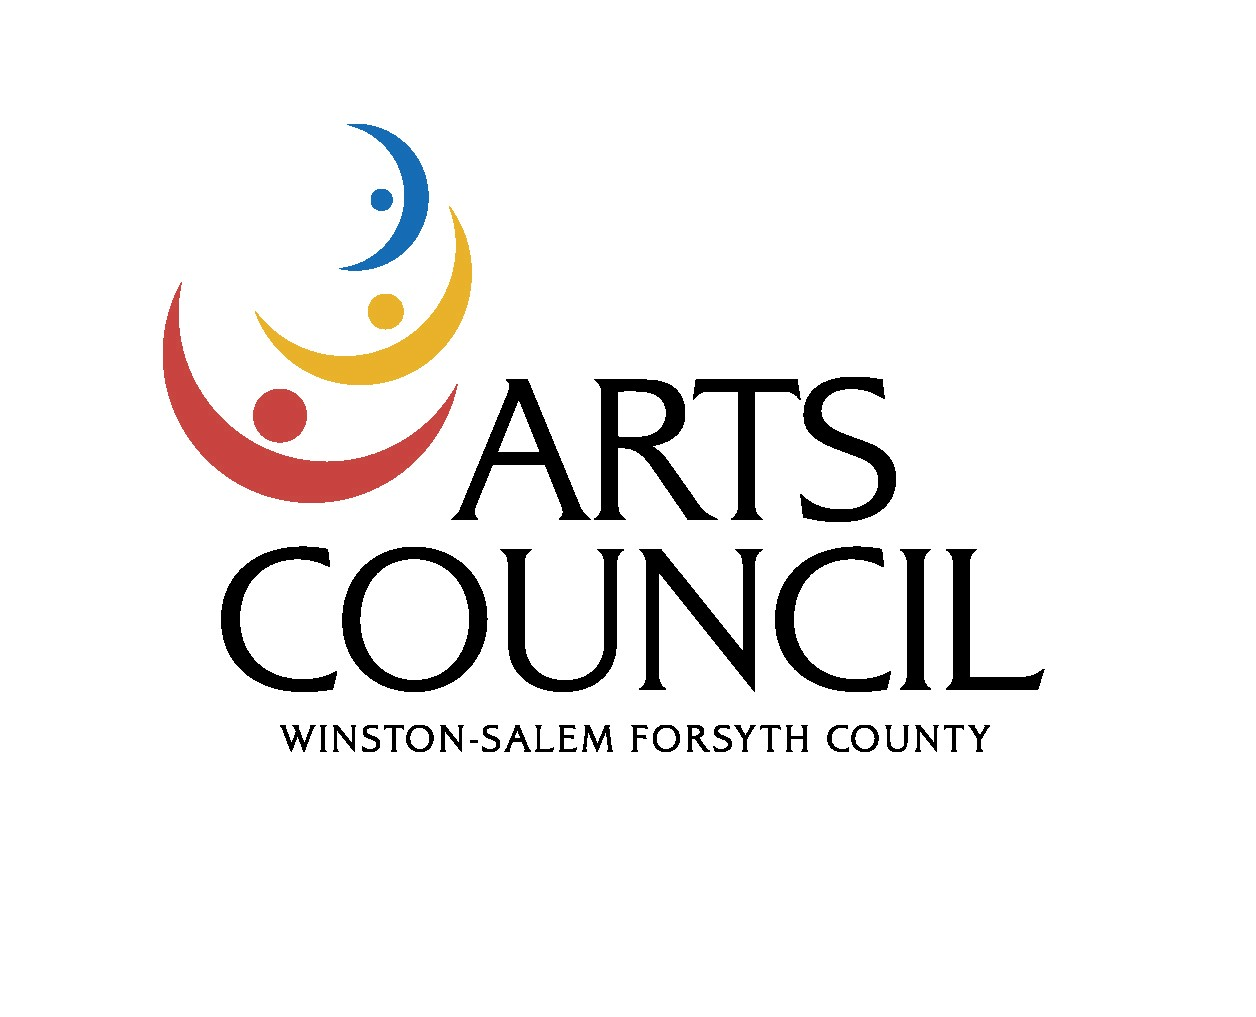 Arts Council of Winston-Salem Forsyth County